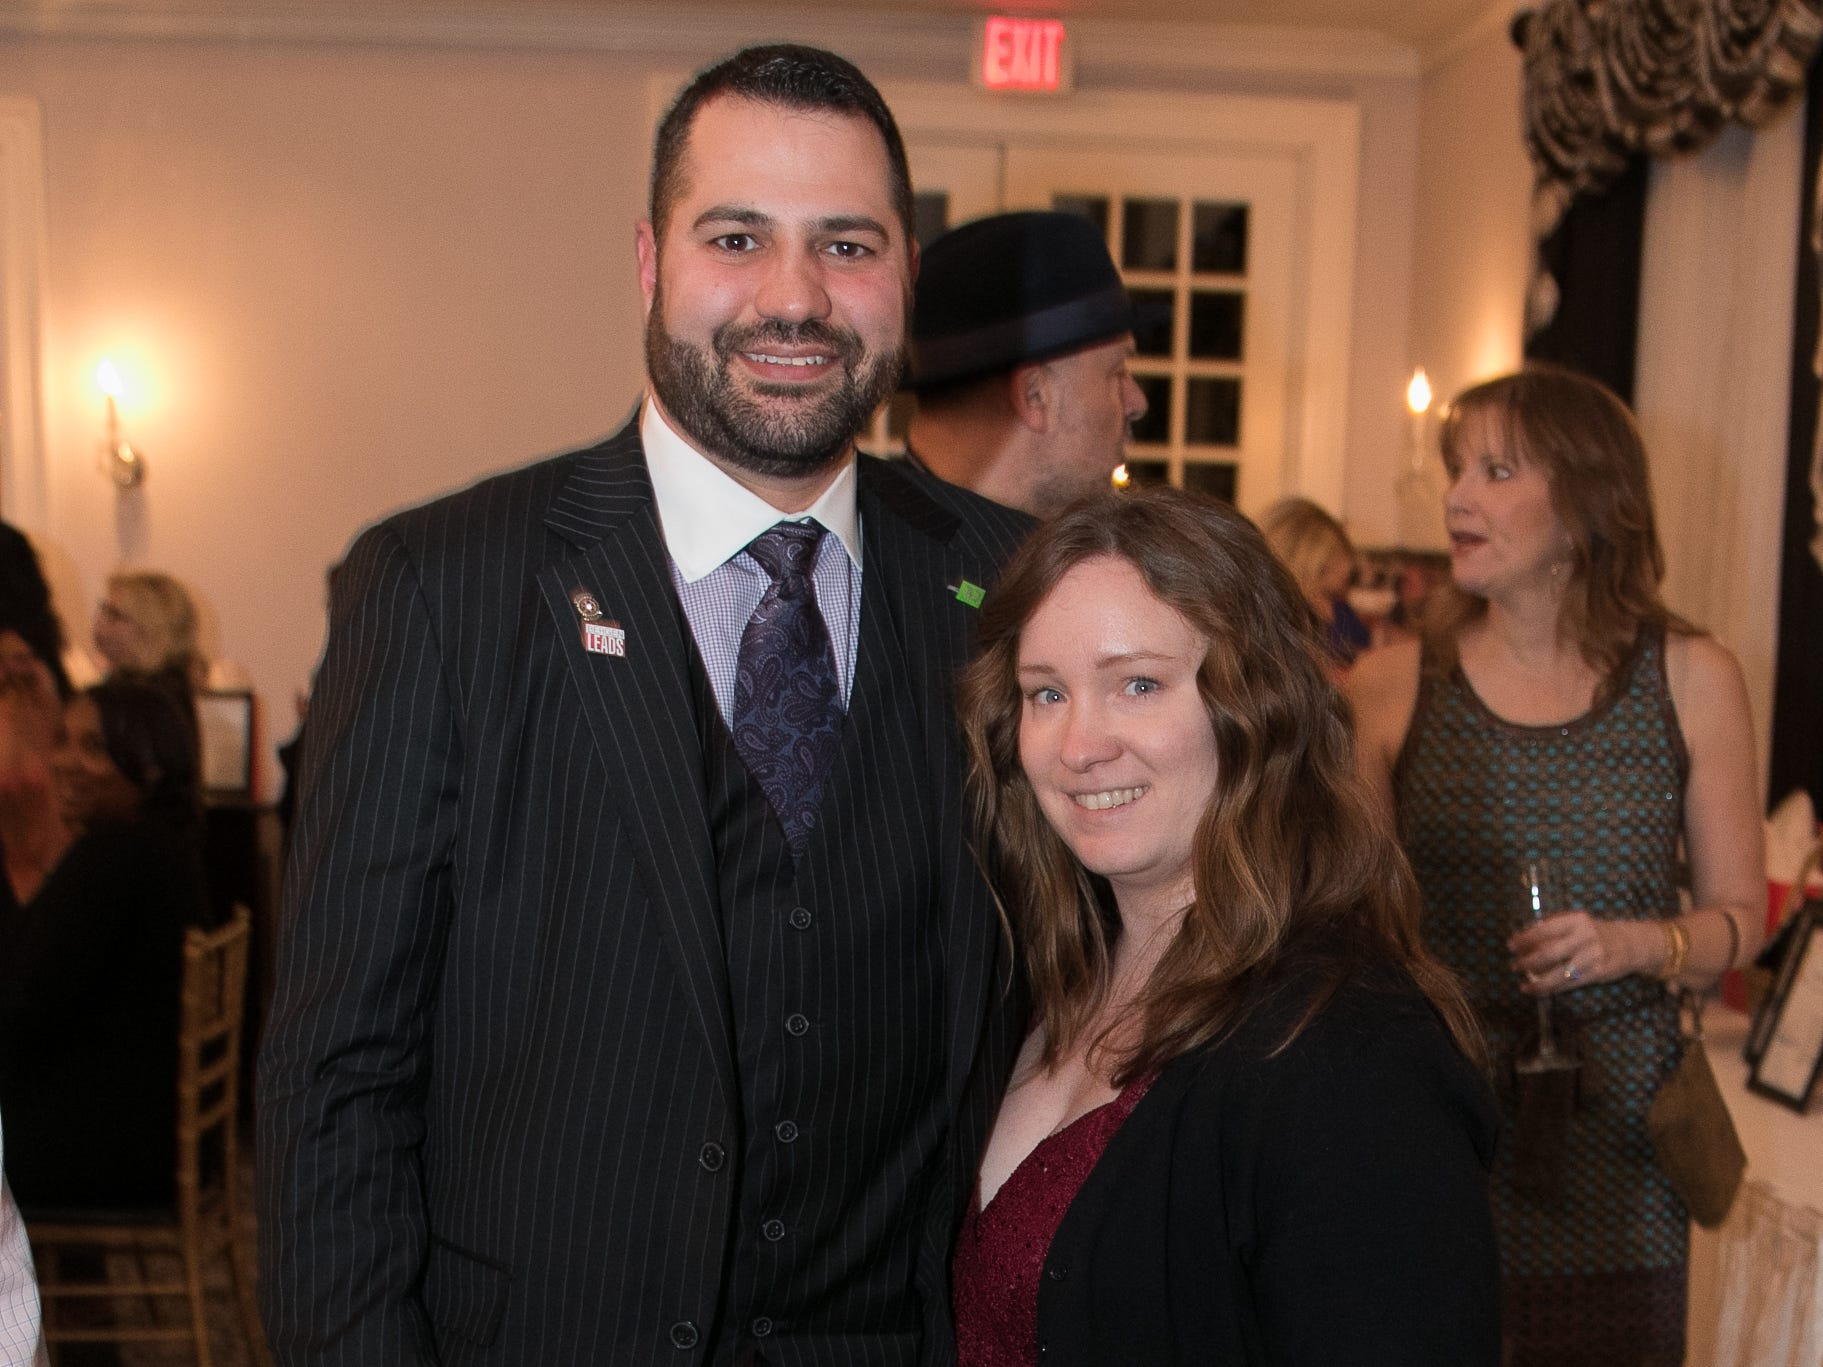 Joe and Nicole Chinnici. The Bergen Volunteer Center celebrated its 10th anniversary of the Bergen LEADS program at The Hearts of Gold Dinner and Auction at the Stony Hill Inn in Hackensack. 11/08/2018